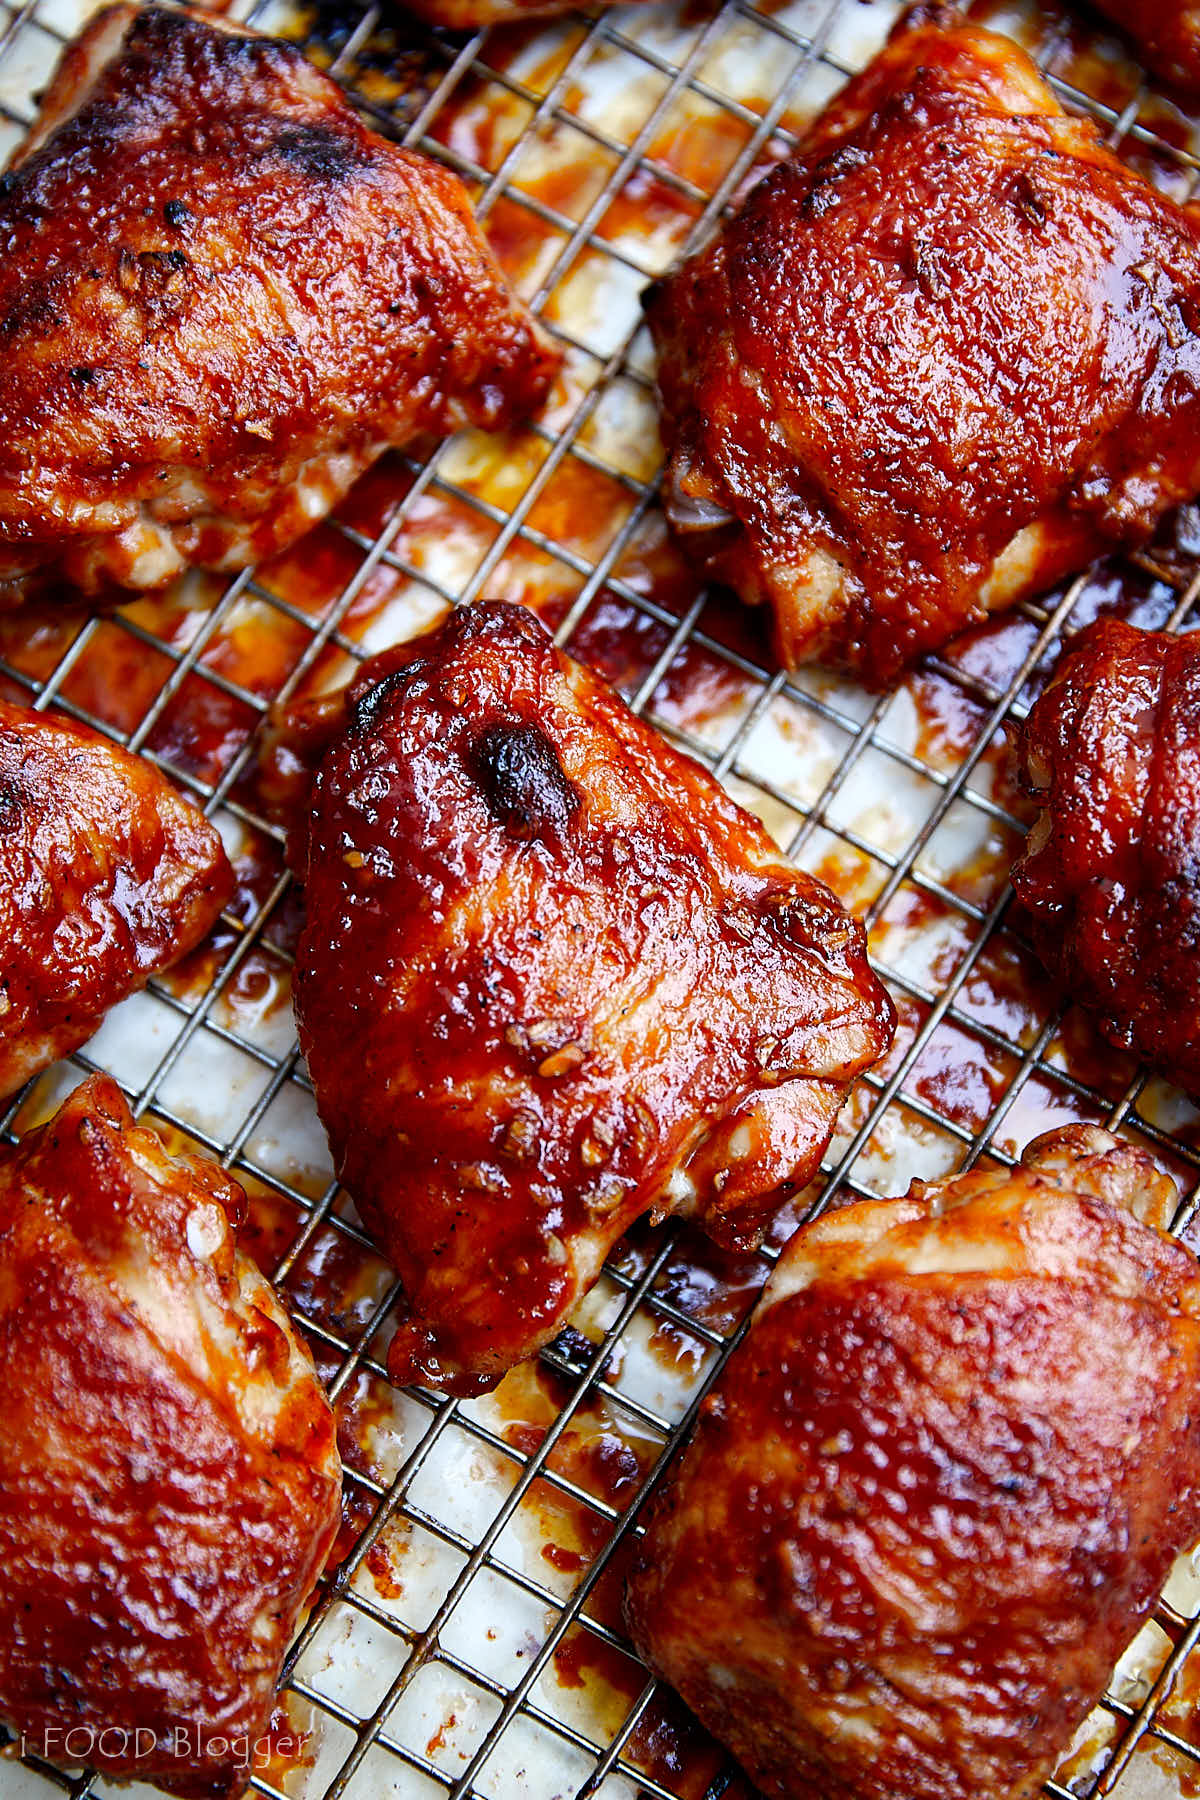 Well-browned chicken thighs glazed with BBQ sauce on a cooling rack over a baking sheet.